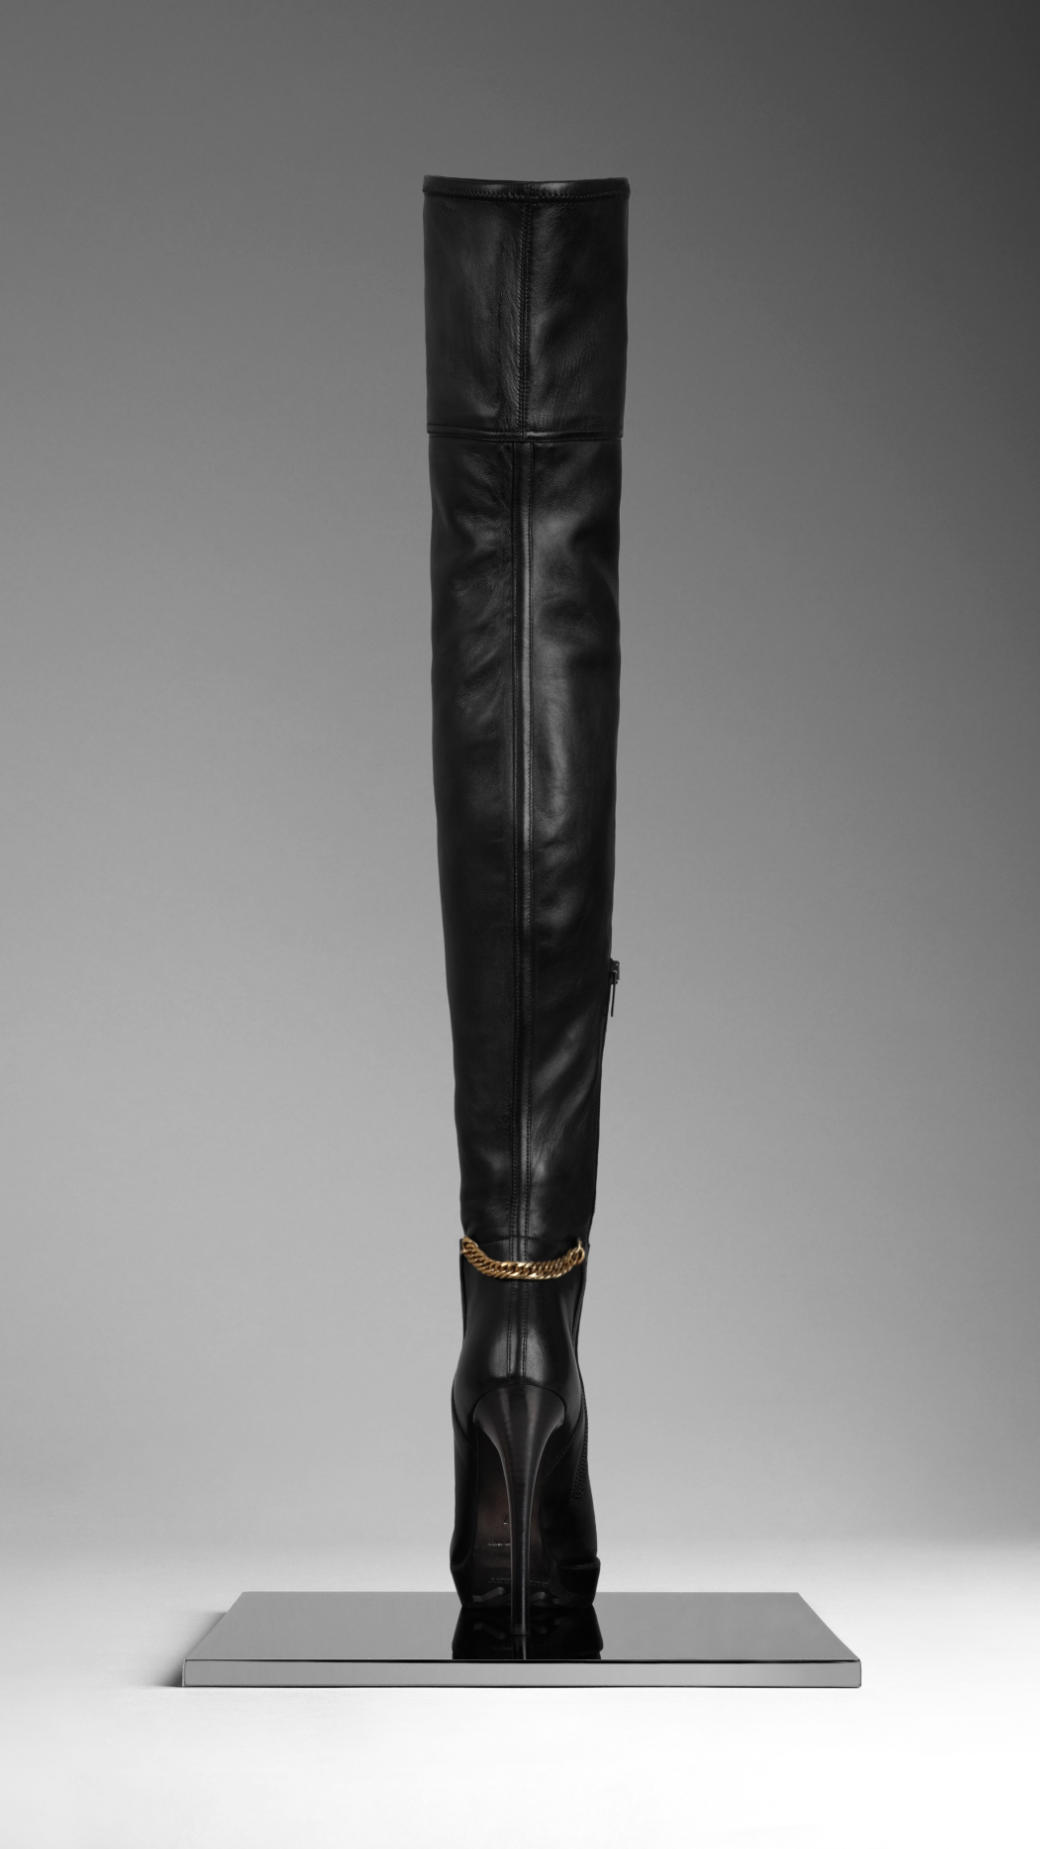 Burberry Ankle Chain Leather Boots in Black